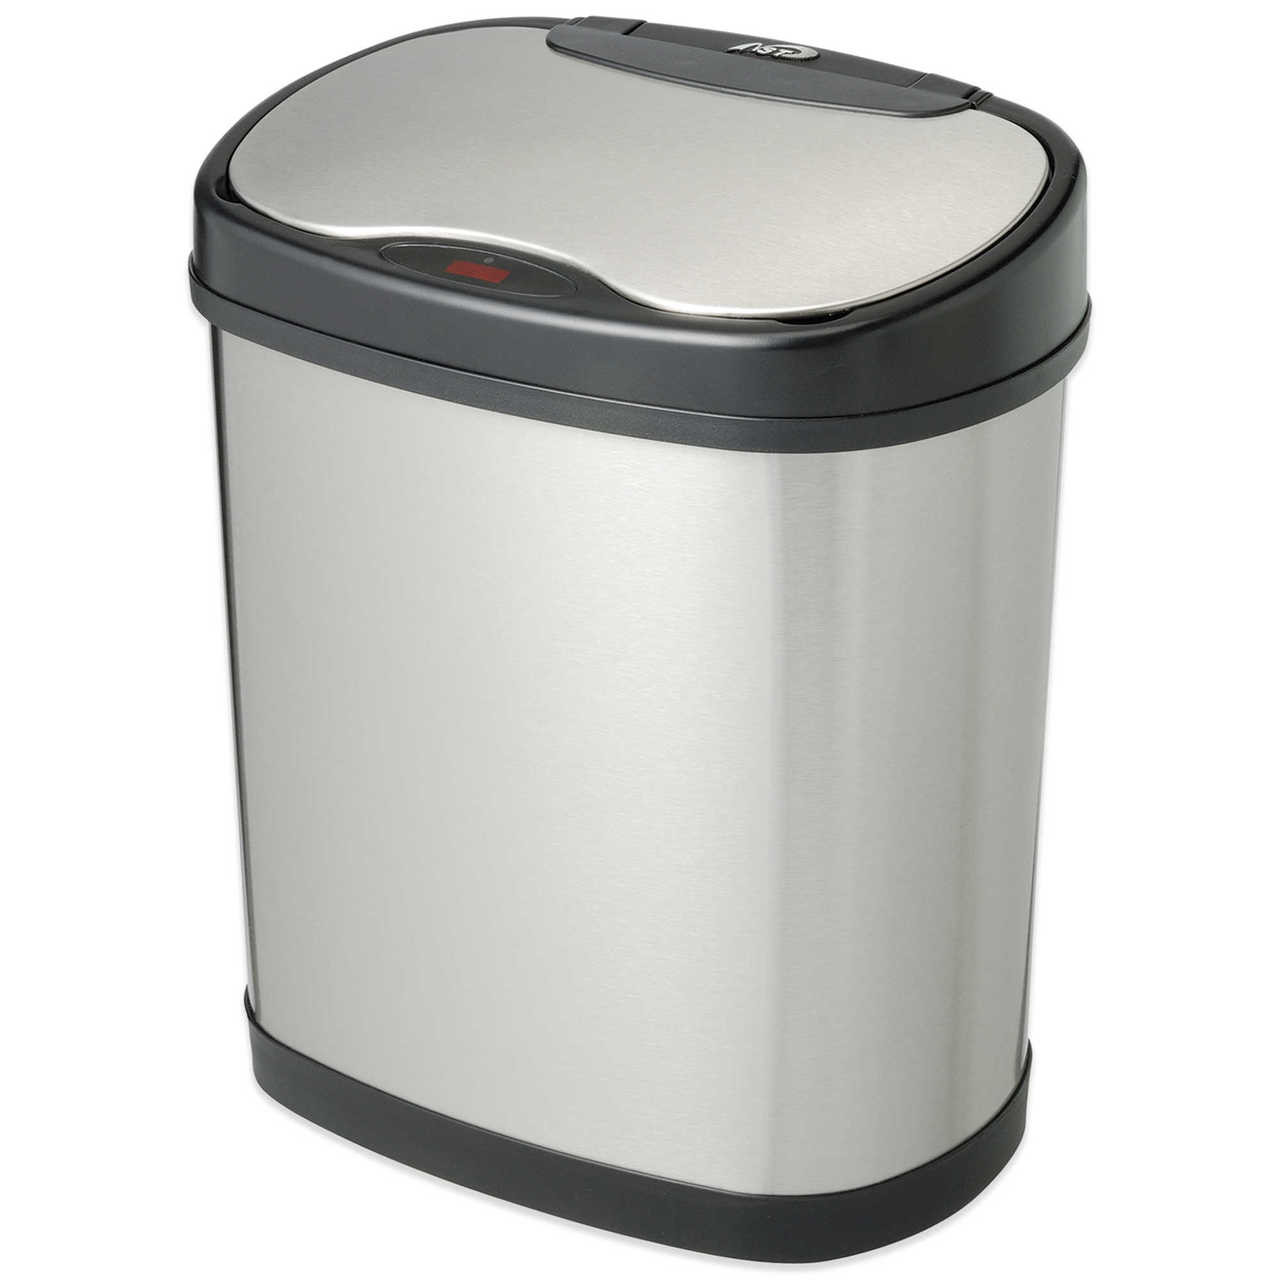 3 Gallon Touchless Automatic Bathroom Trash Can Stainless Steel DZT-12-13